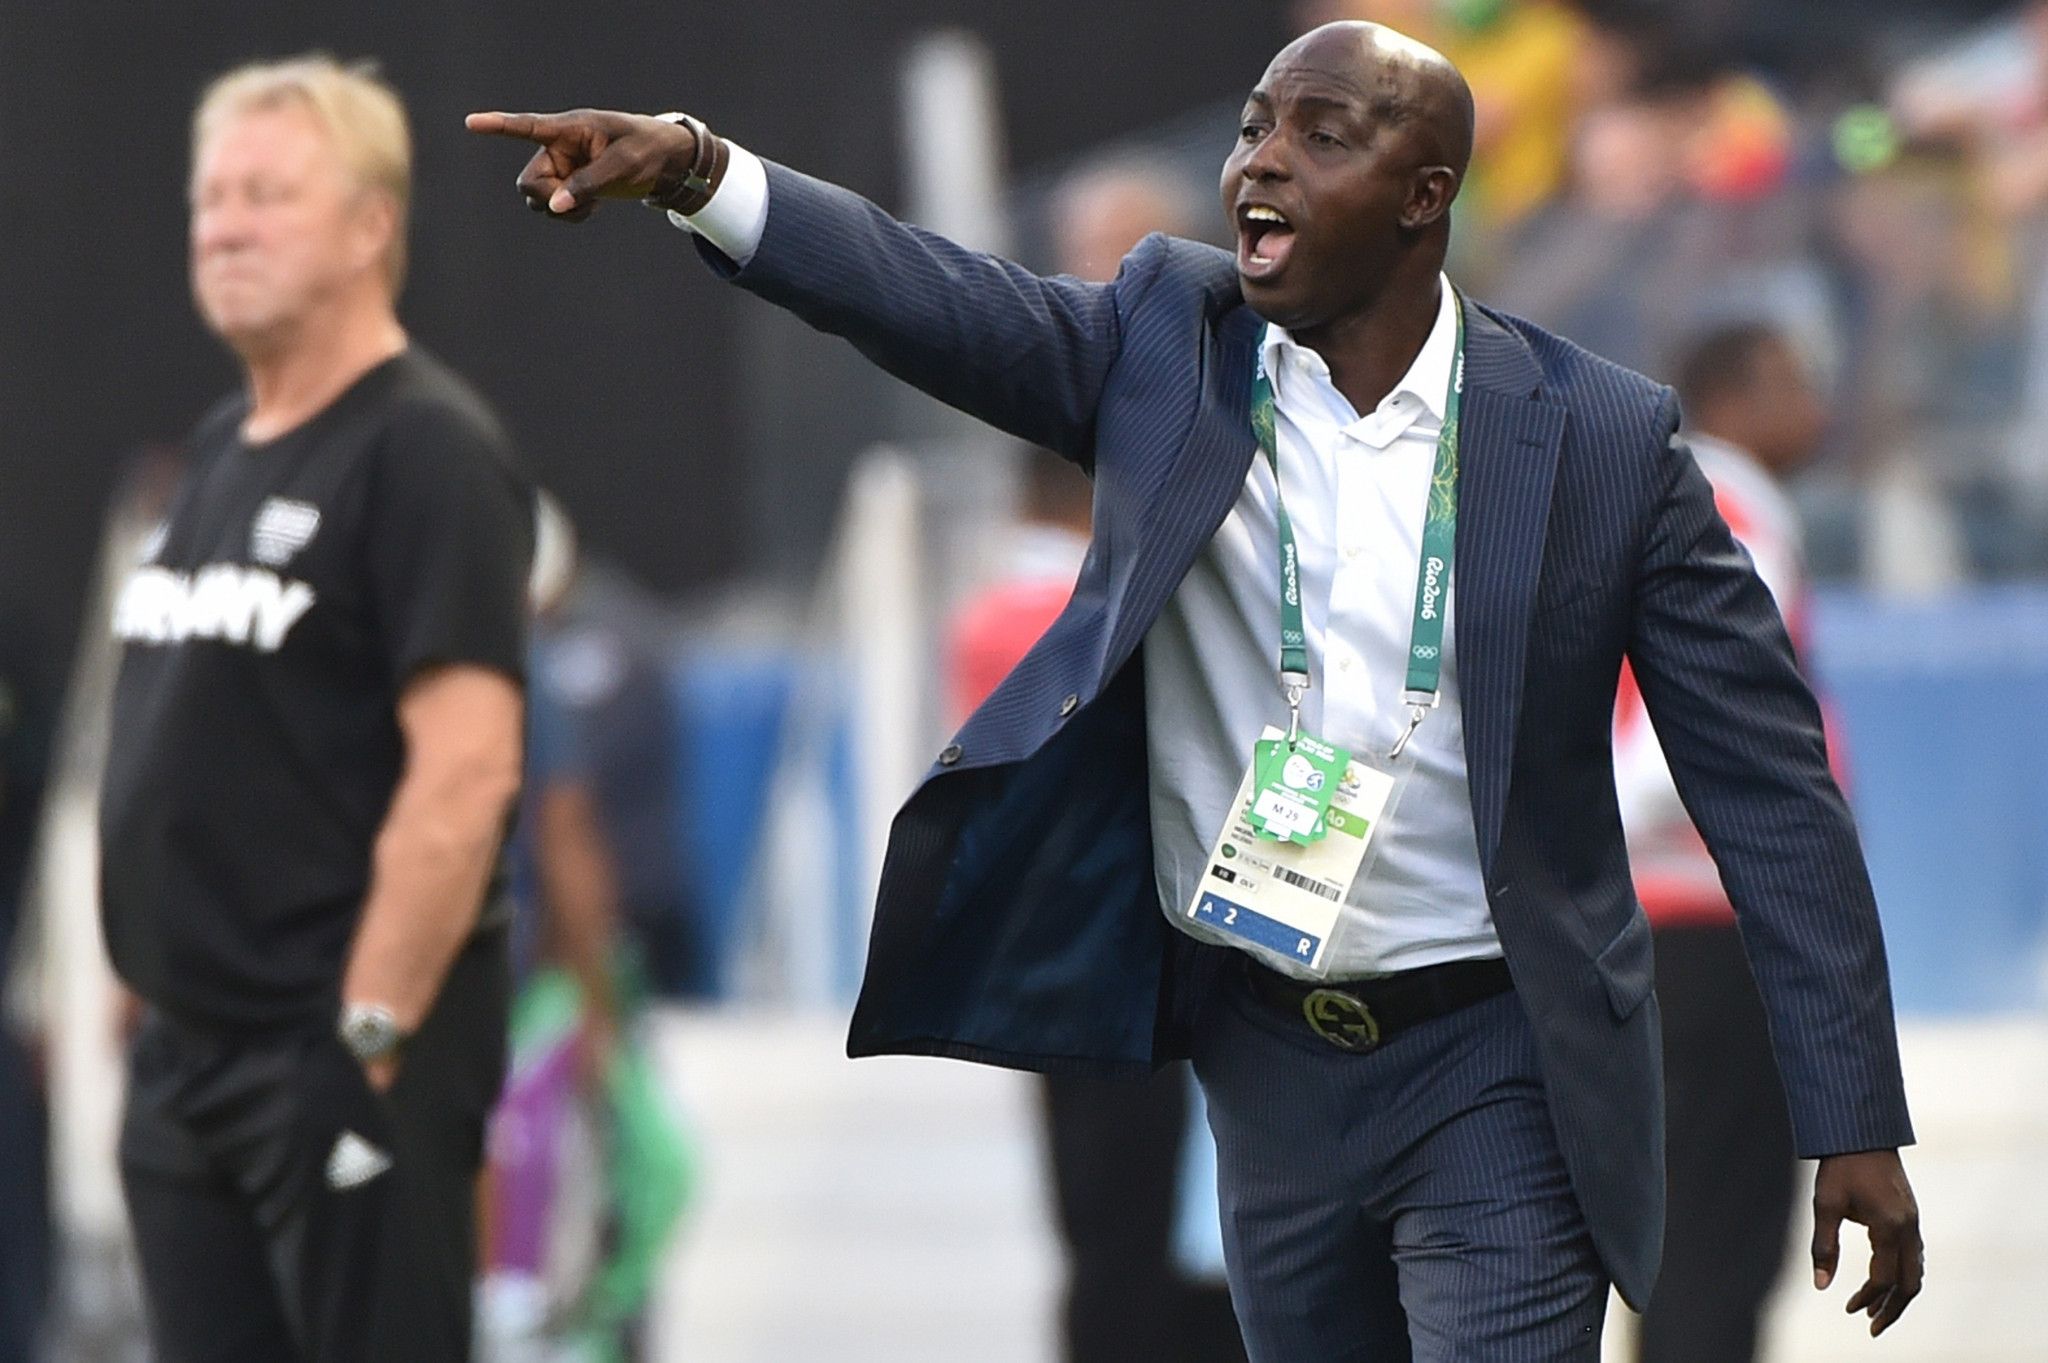 Former Nigeria coach Siasia given life ban by FIFA in connection with match-fixing